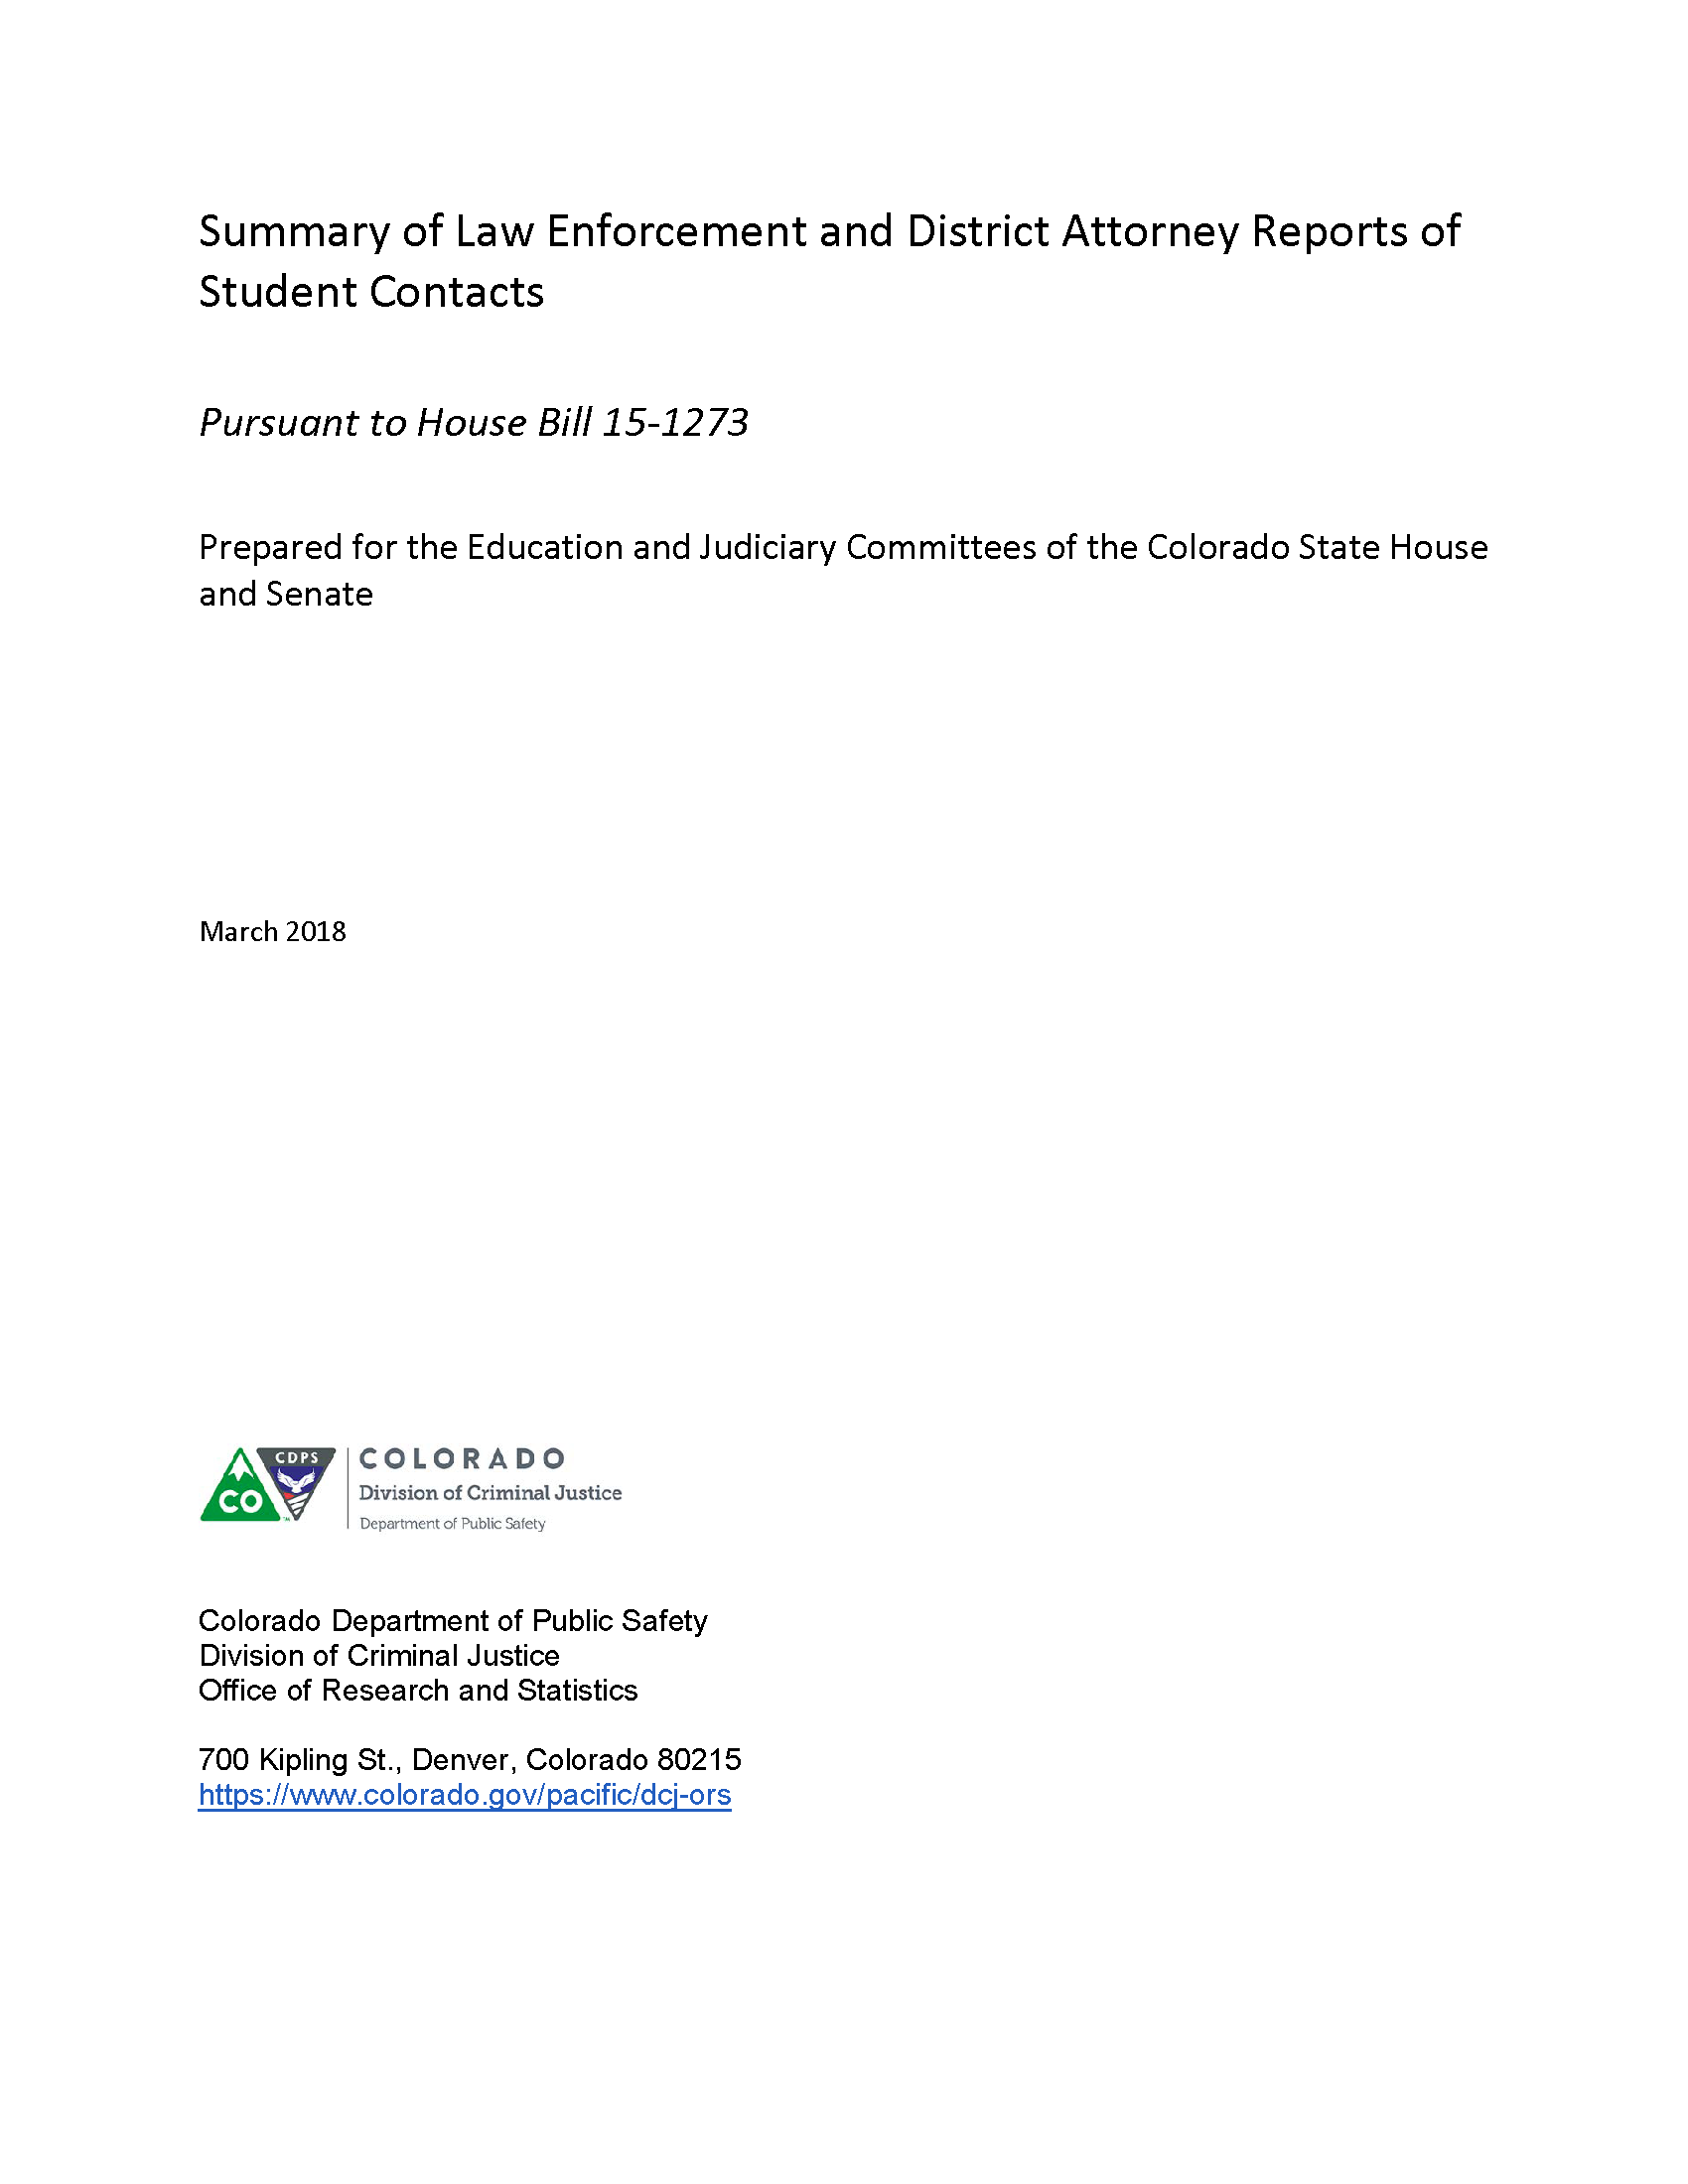 Summary of Law Enforcement and District Attorney Reports of Student Contacts (March 2018)